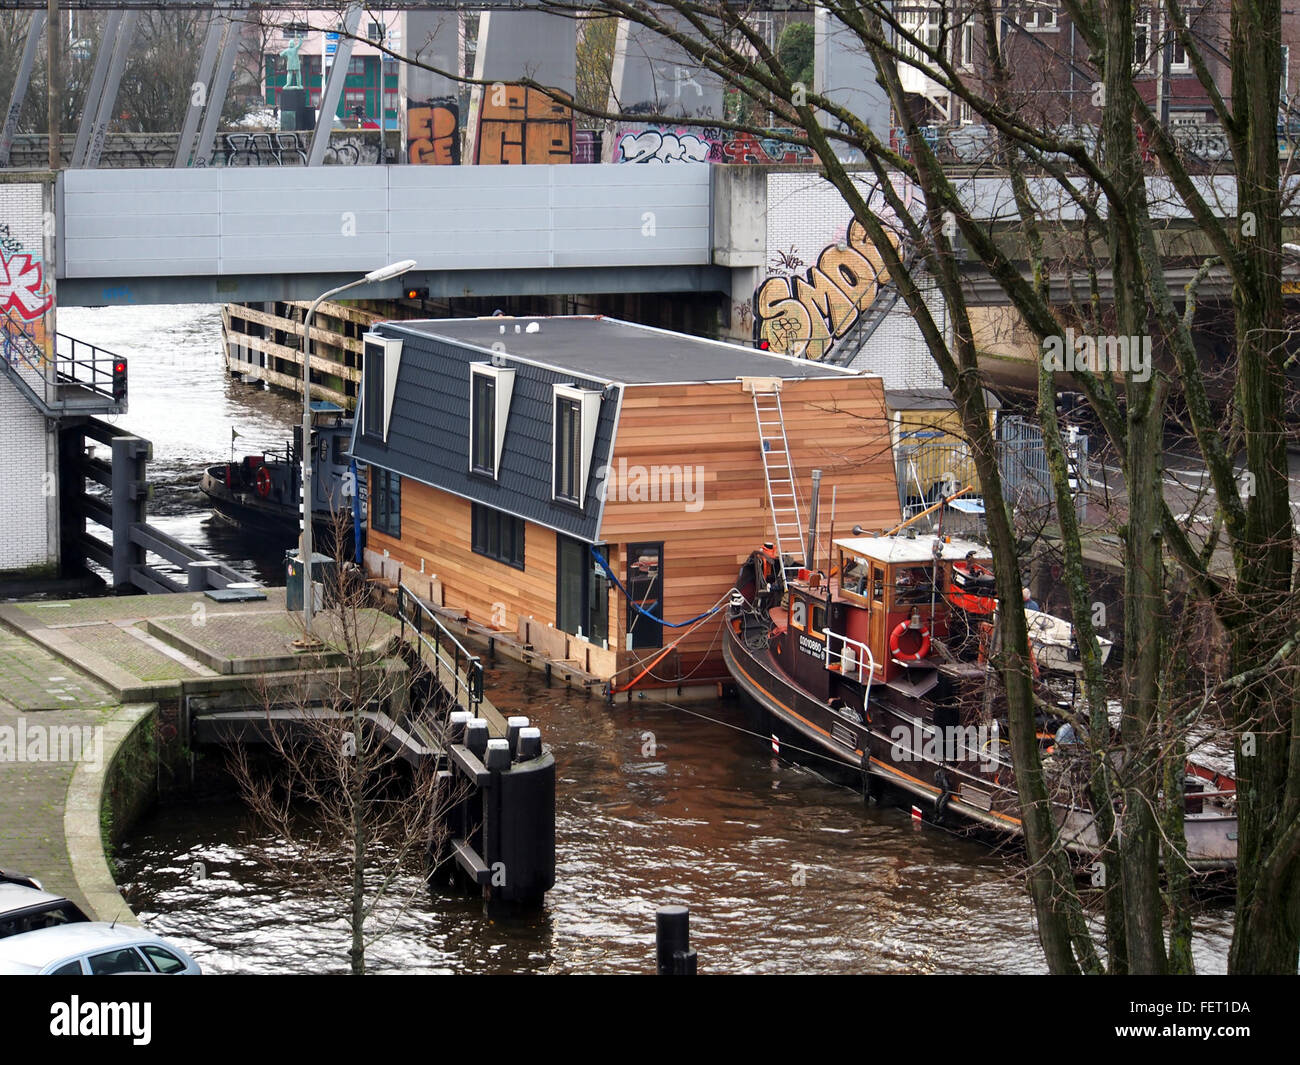 Housboat moved by Wiljo ENI 03010860 pic4 - Stock Image